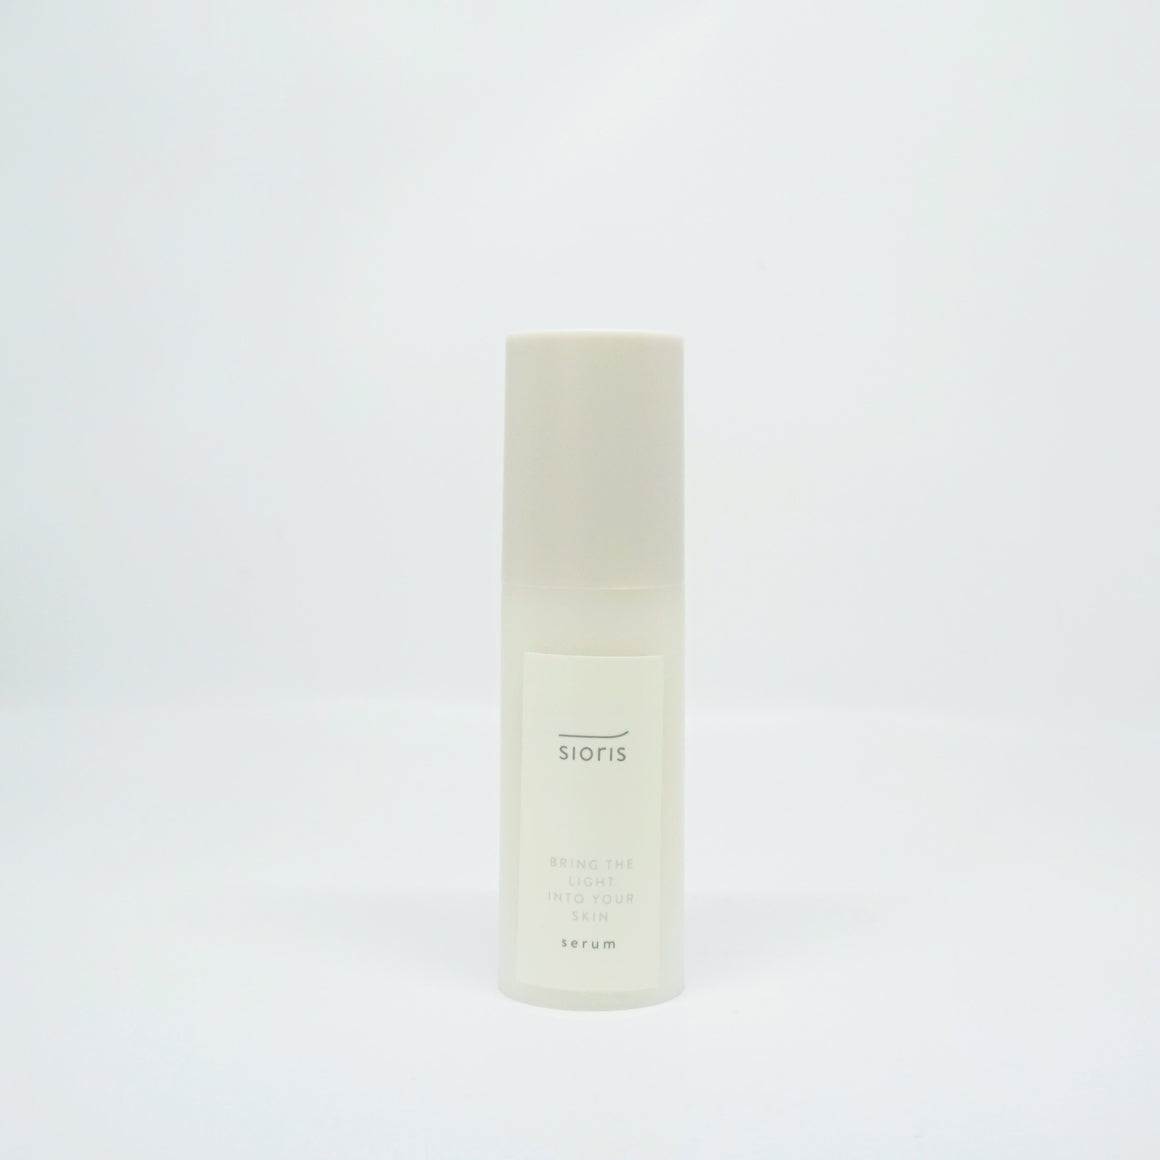 SIORIS Bring the Light Into Your Skin Serum [EXP 08.03.2019]